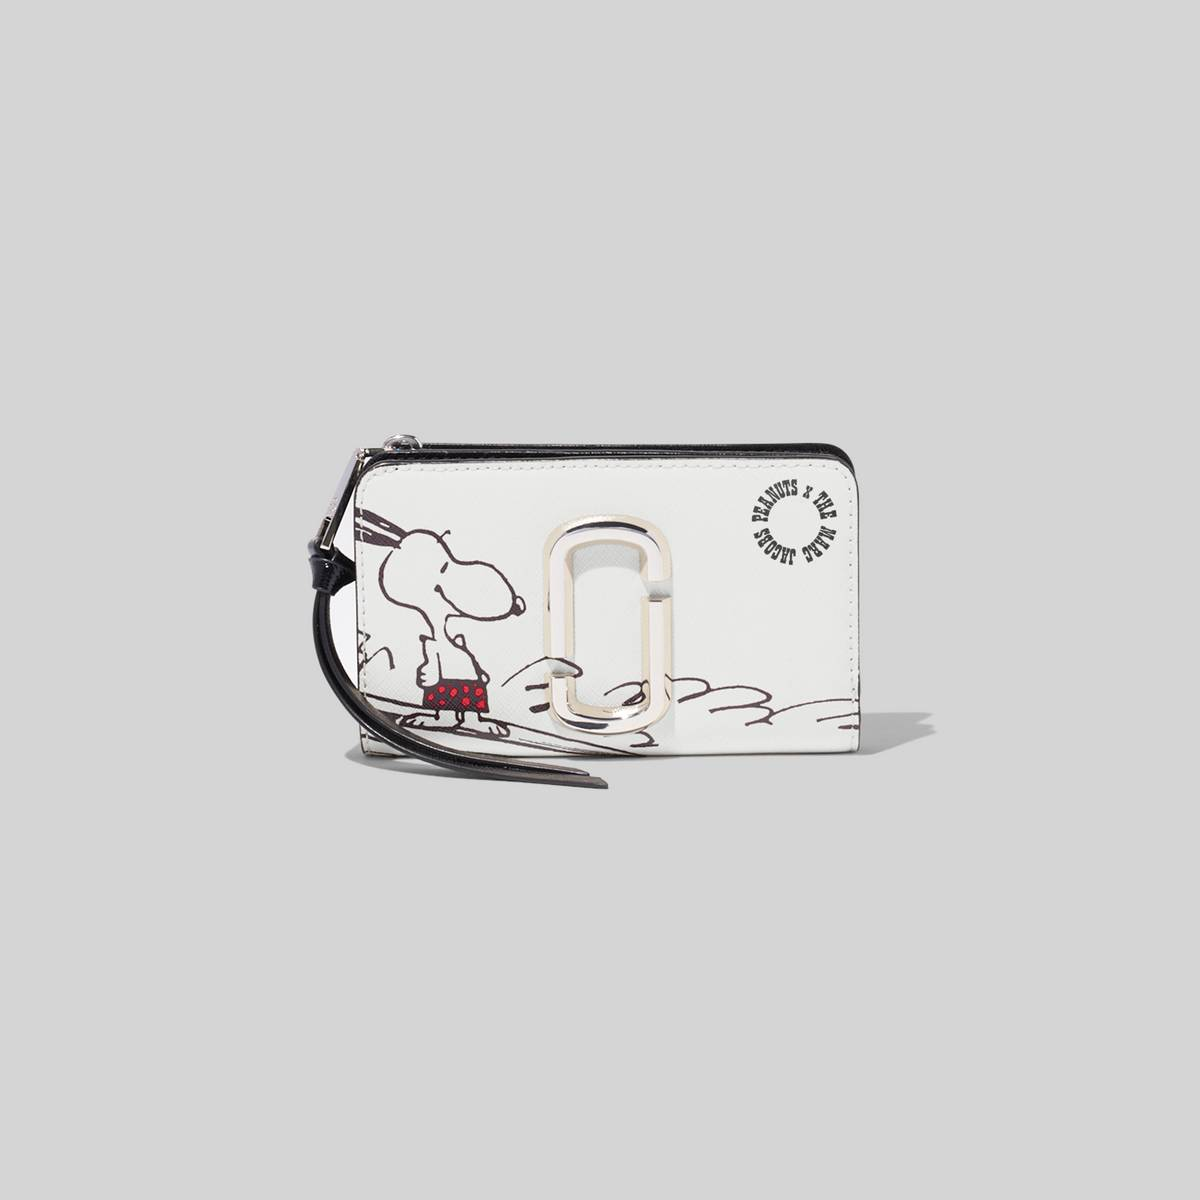 A classic continental wallet with plenty of interior compartment space for your cash, cards, receipts and everything in between. This style features a playful Snoopy illustration. | MARC JACOBS Women\\'s Peanuts x The Snapshot Compact Wallet in White Multi